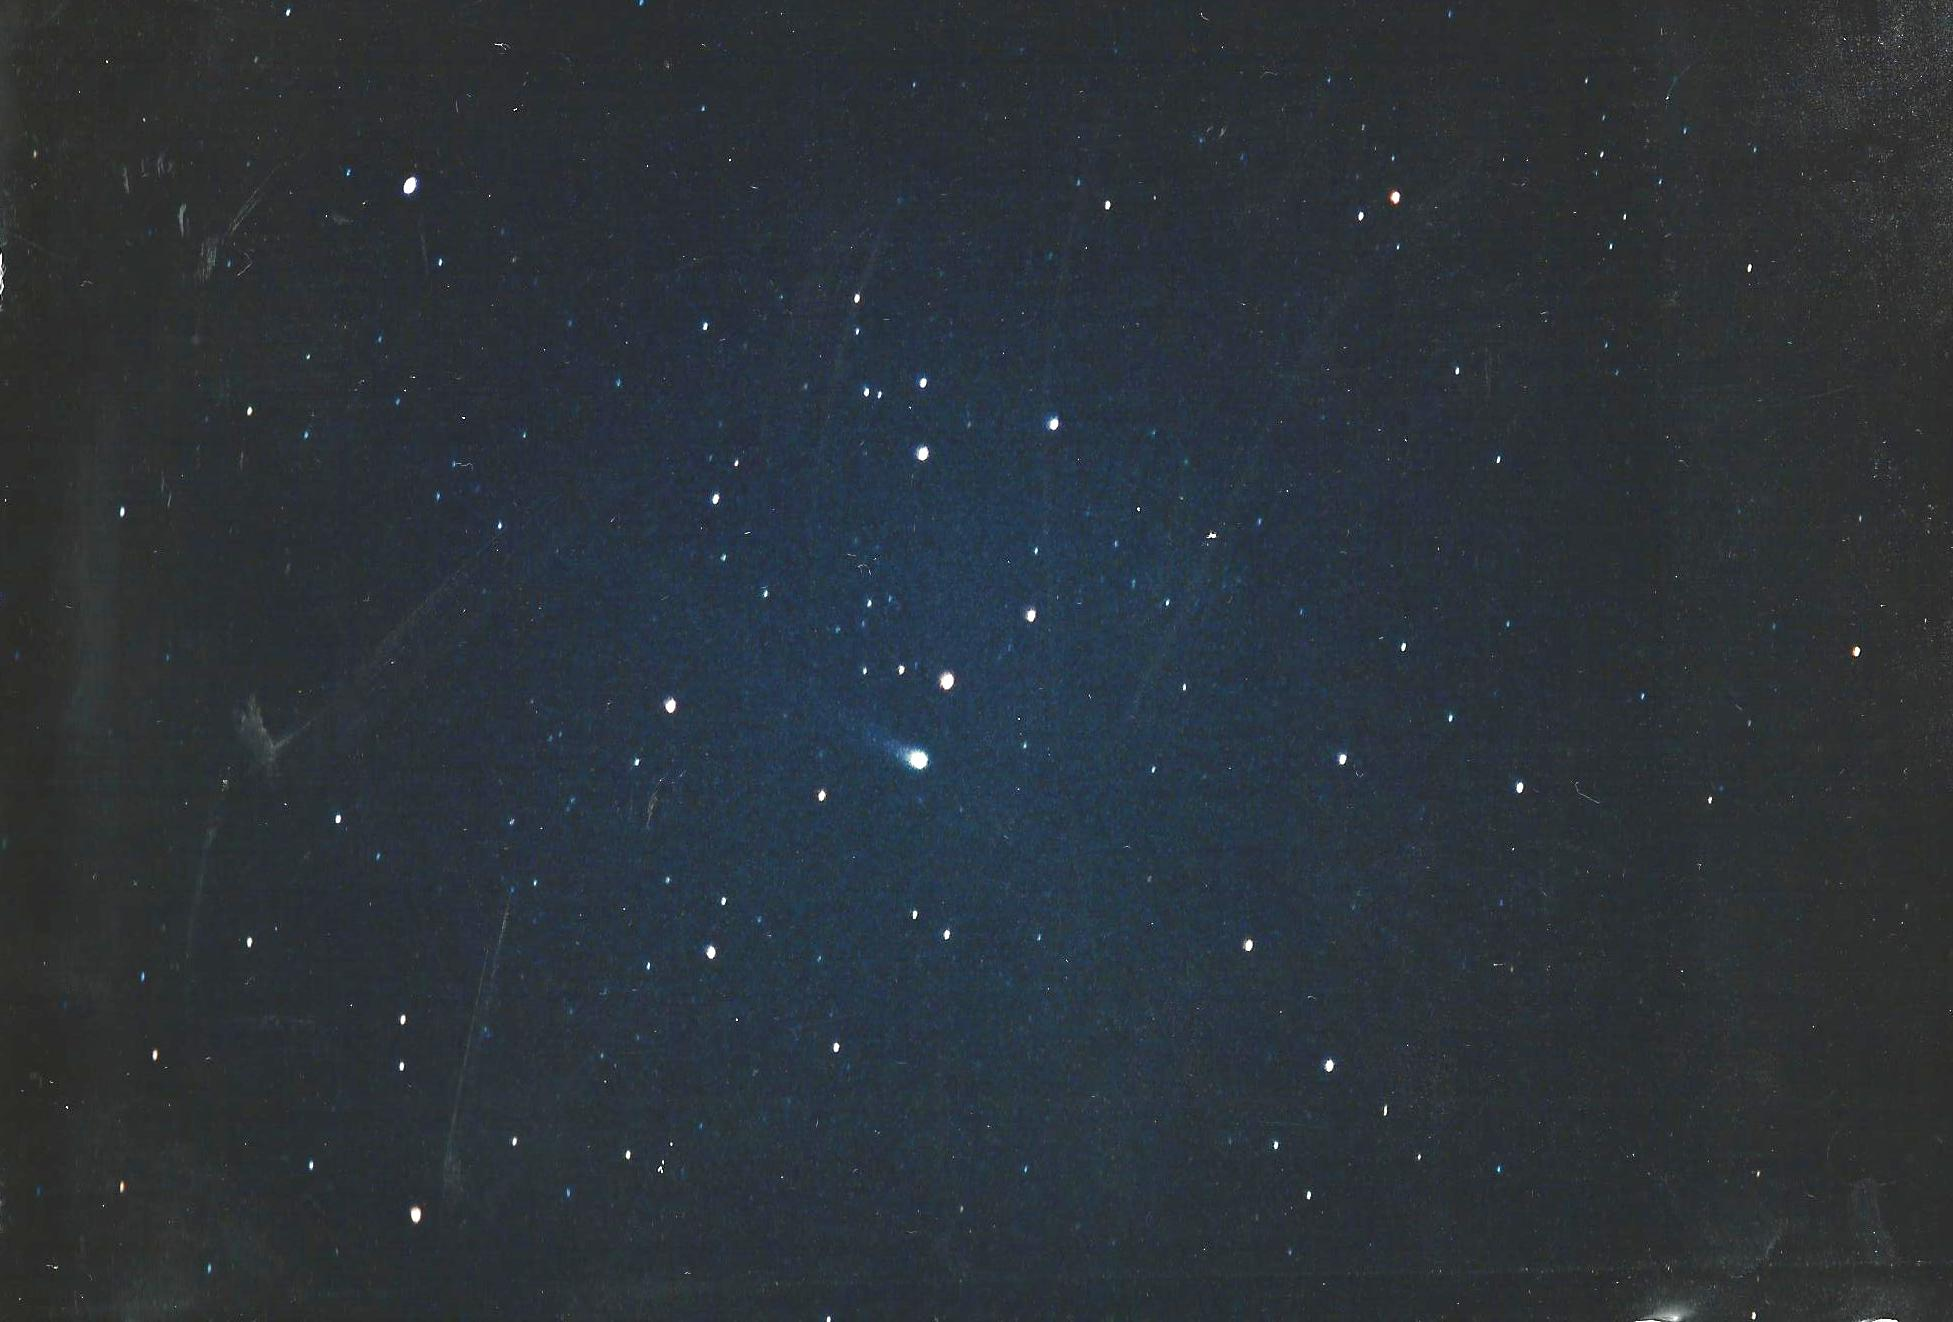 Comet Halley in January 1986